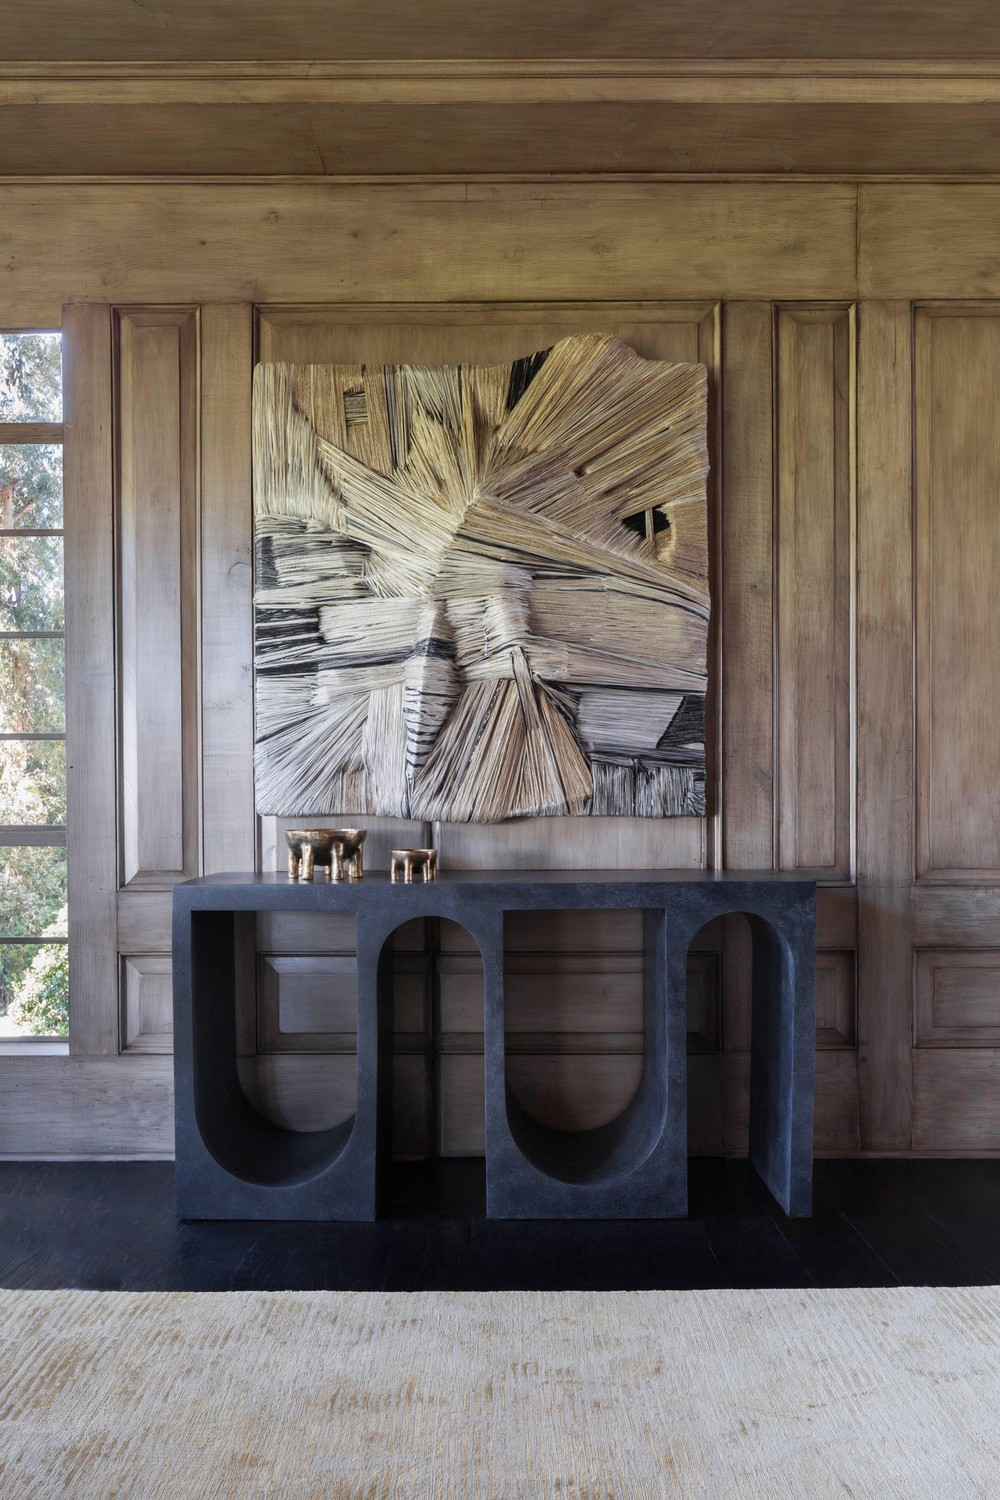 25 Luxury Sideboards Consoles to Consider for a Bold Design Concept 12 luxury sideboards 25 Luxury Sideboards & Consoles to Consider for a Bold Design Concept 25 Luxury Sideboards Consoles to Consider for a Bold Design Concept 12